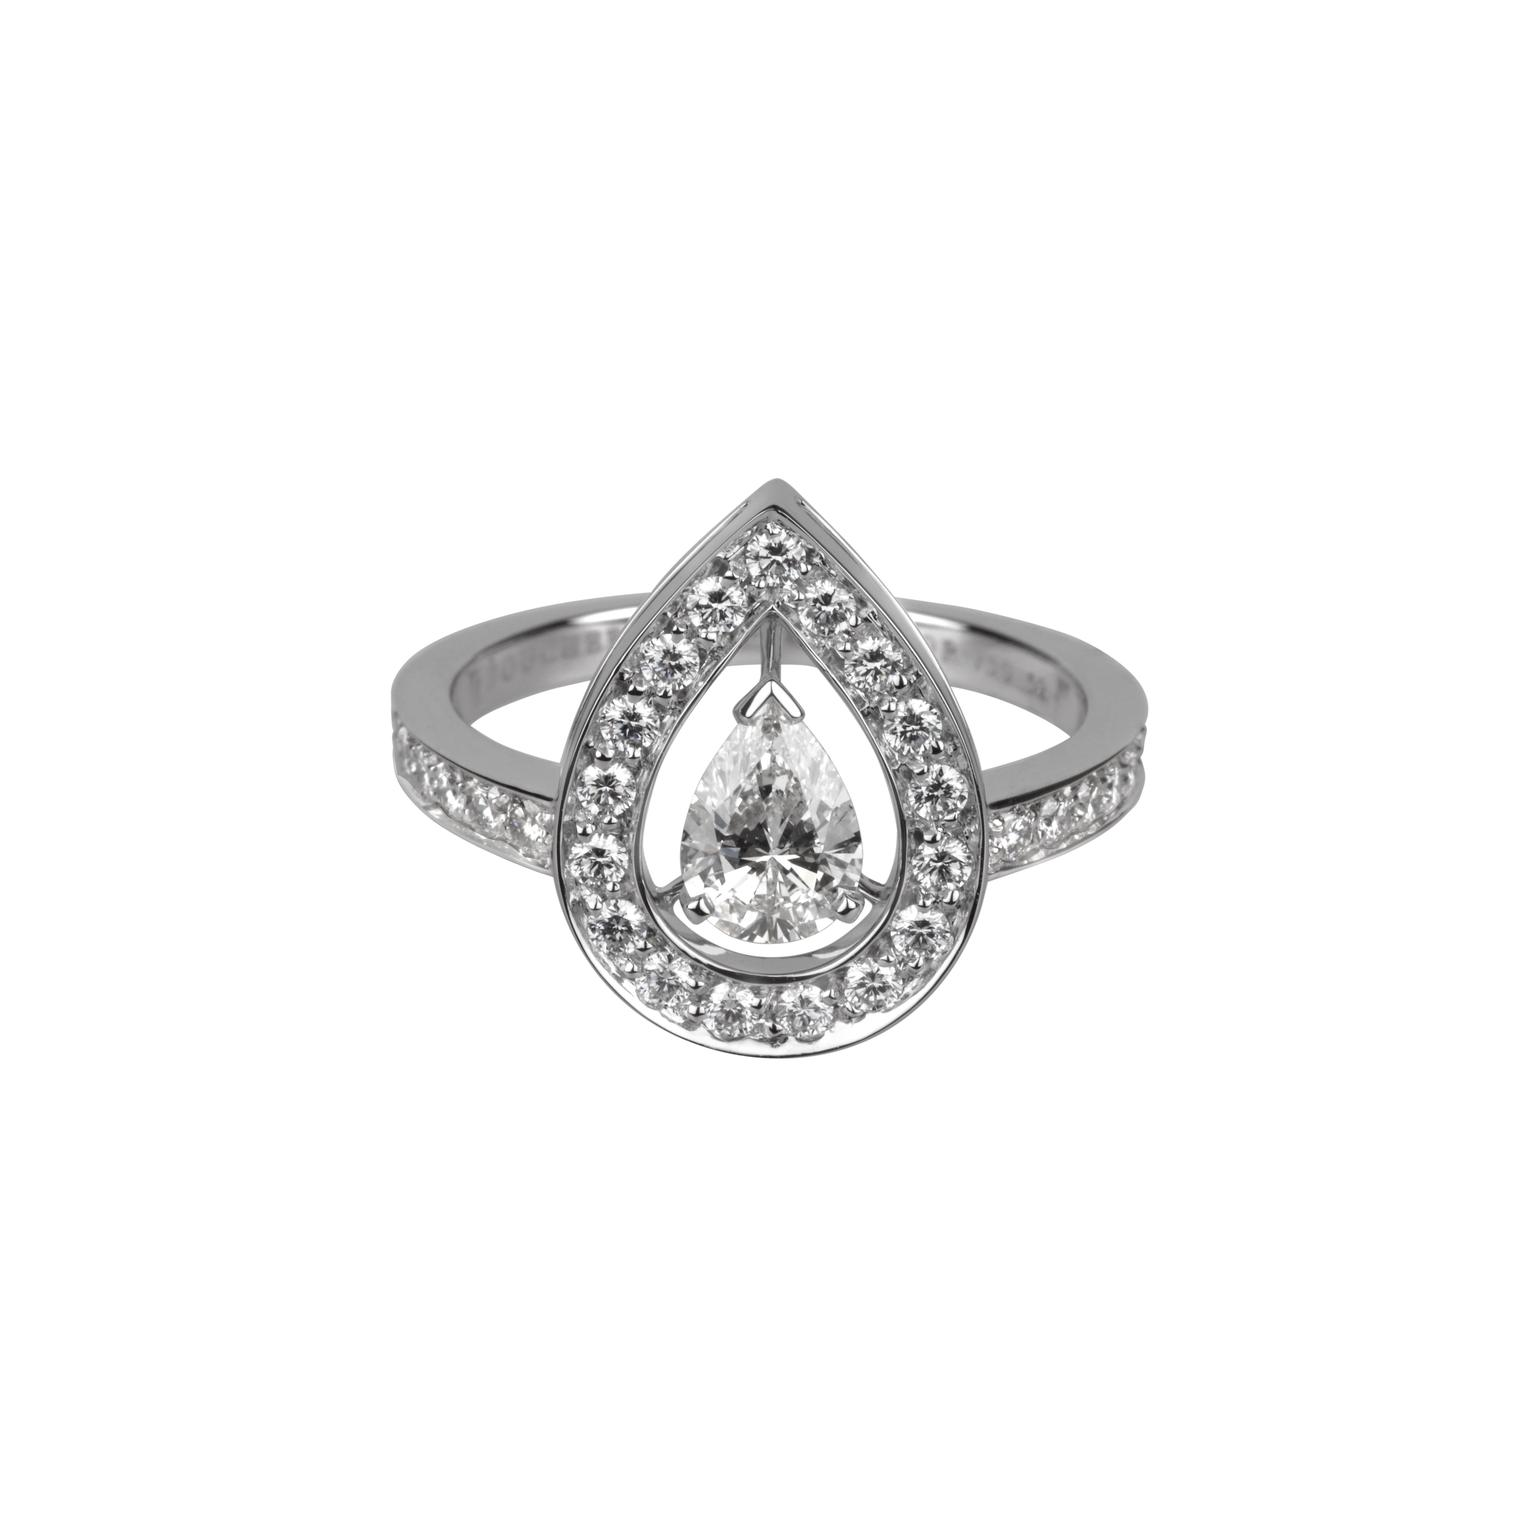 Boucheron Ava Pear diamond ring